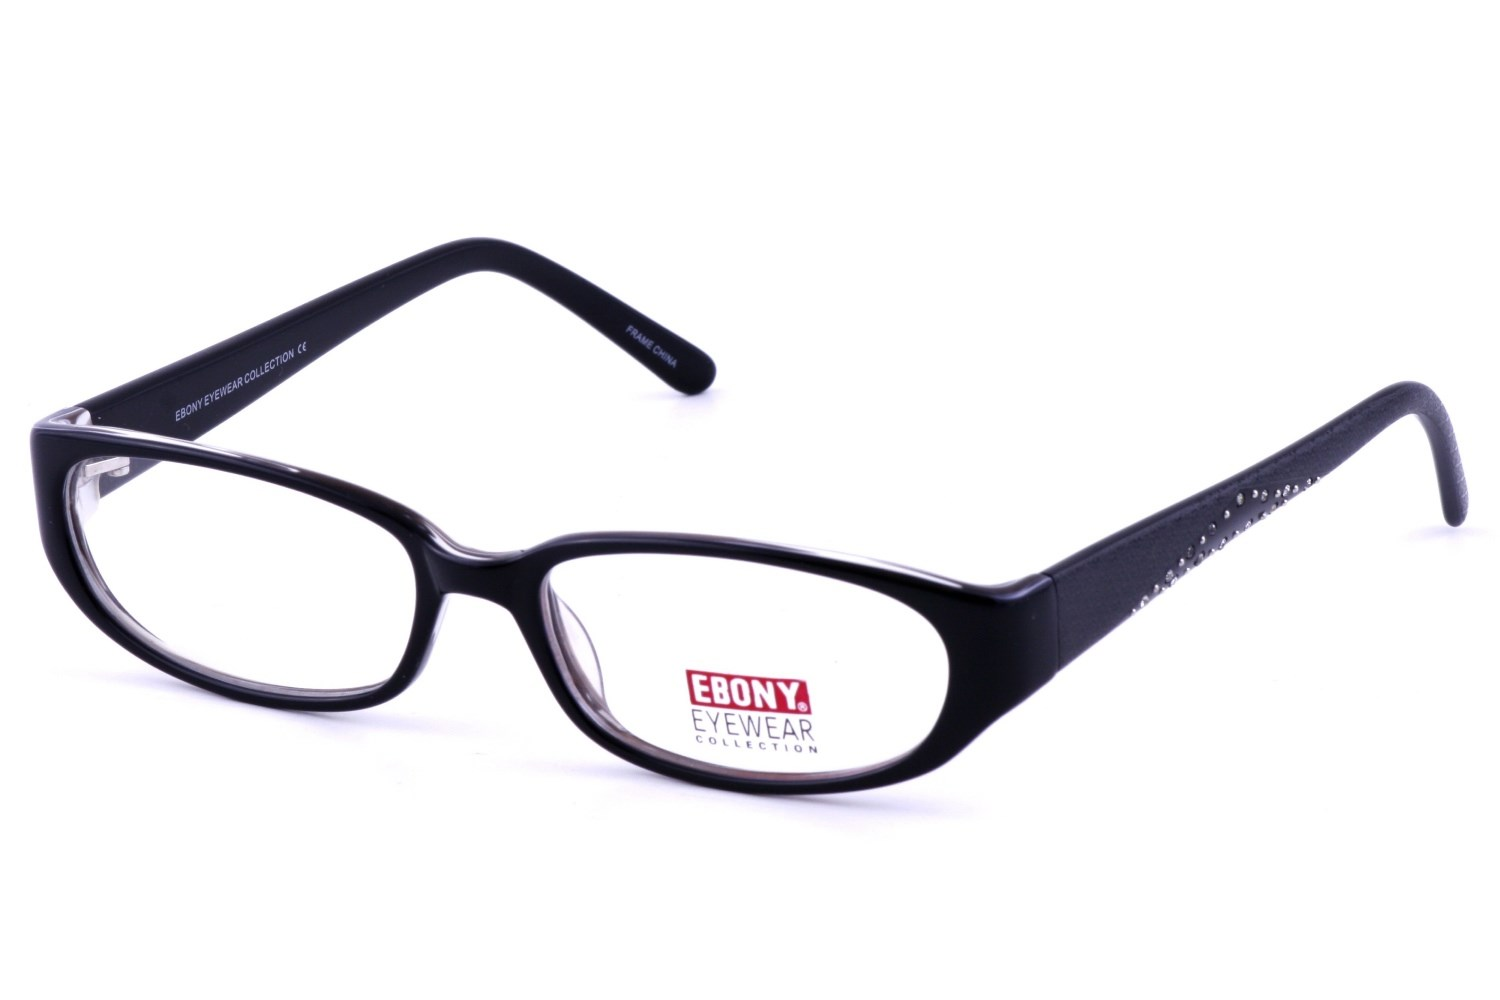 Ebony 4 Prescription Eyeglasses Frames